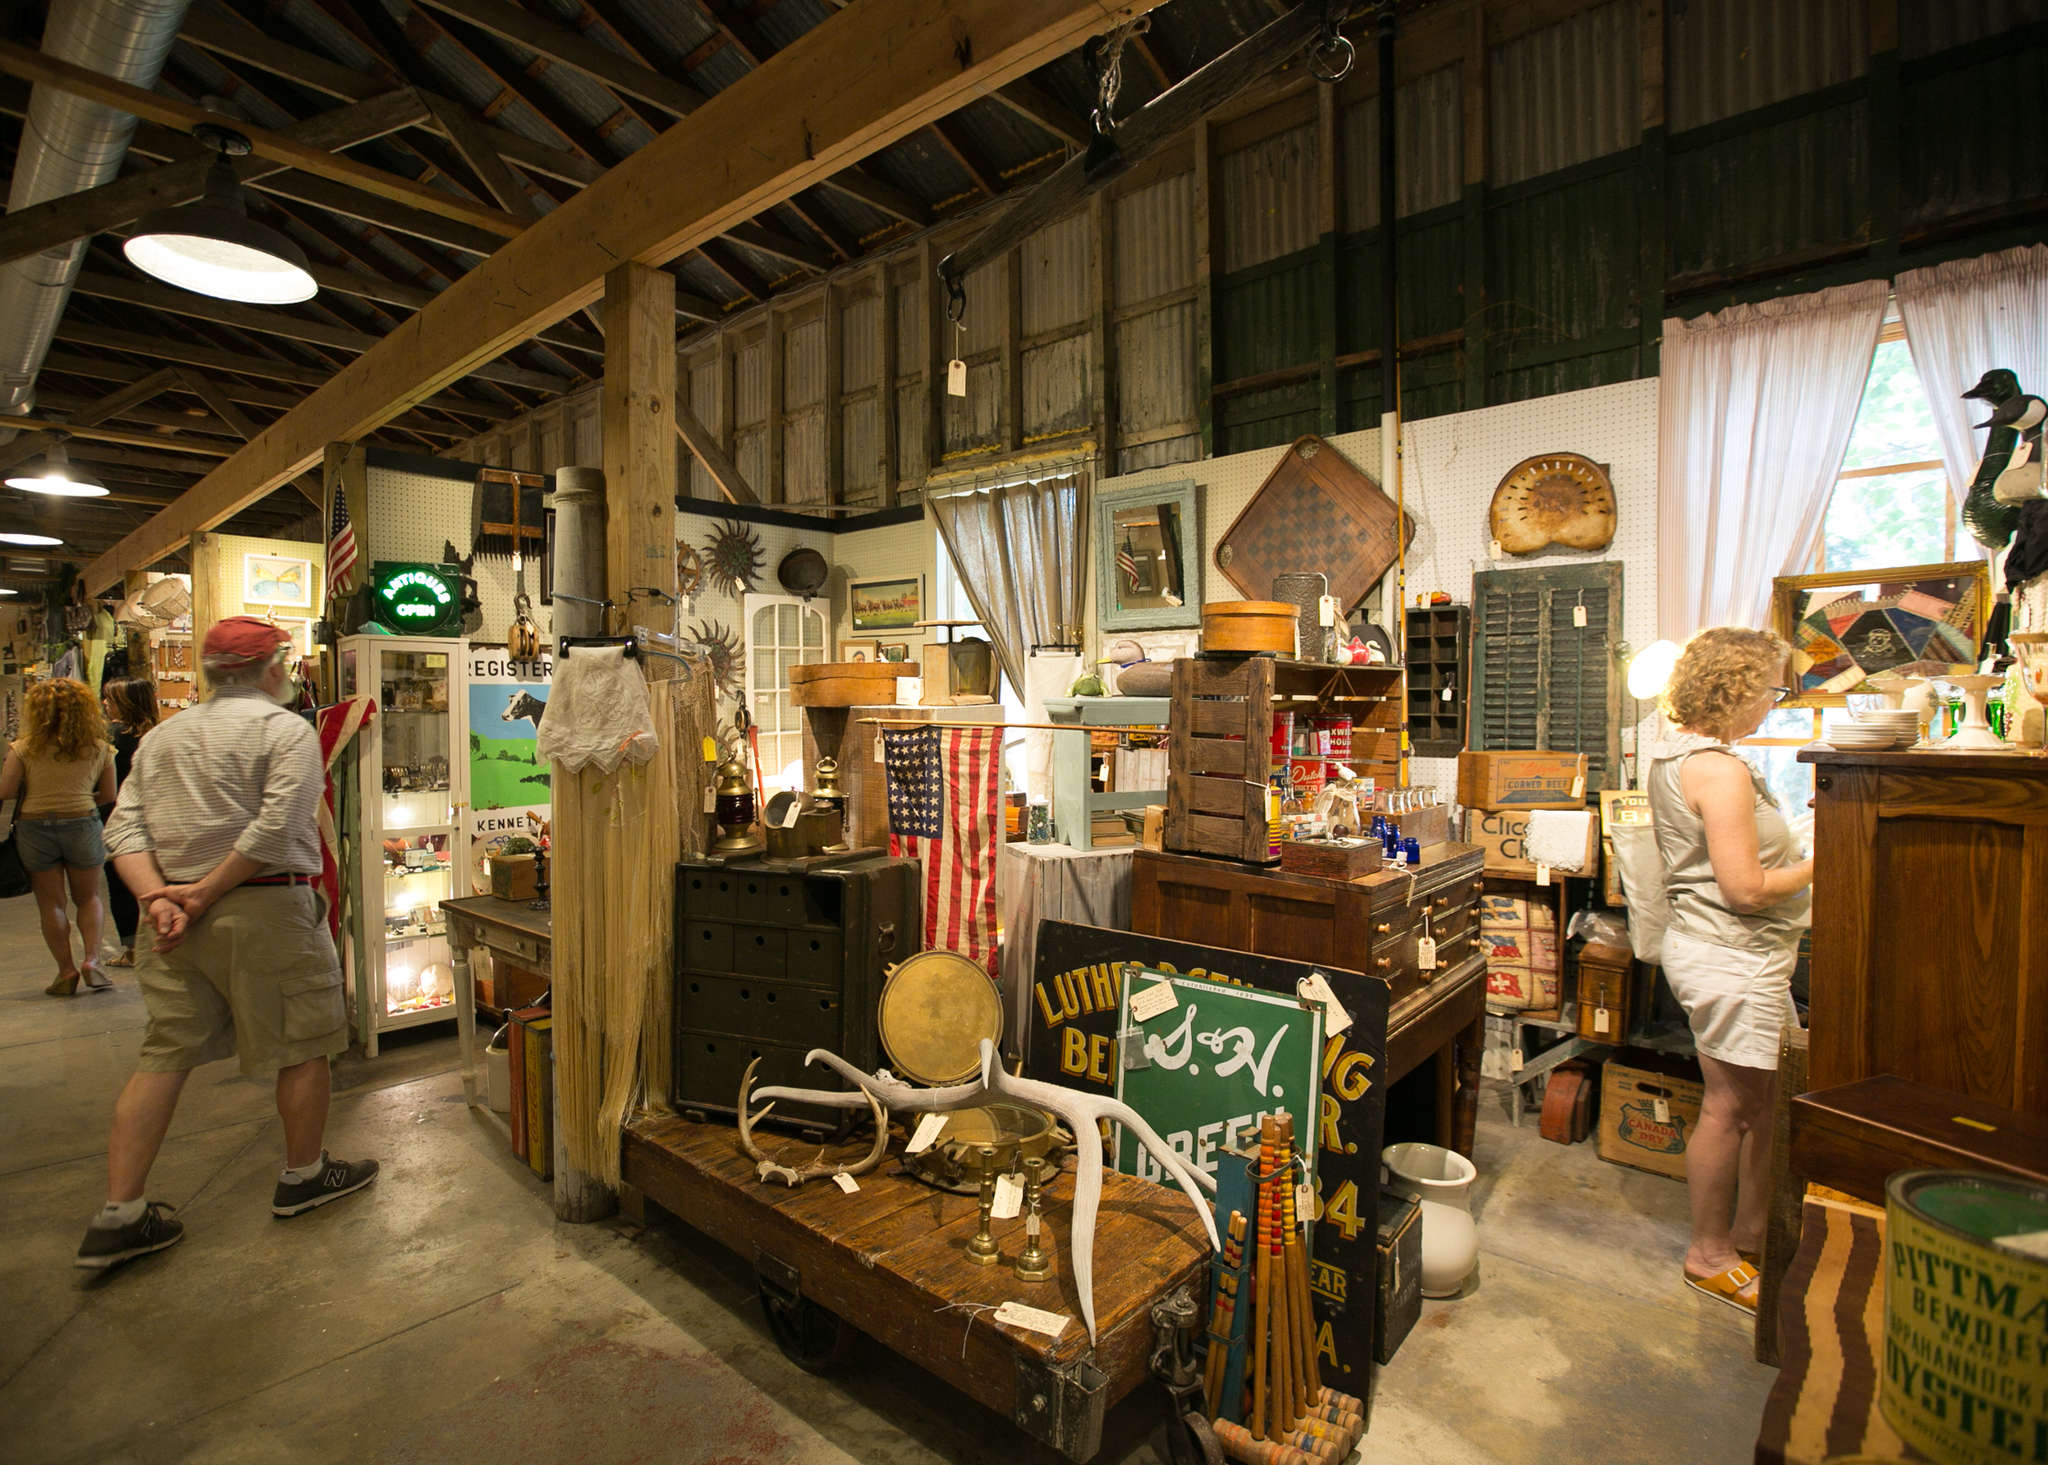 At the West End Garage, 51 vendors gather under one roof, selling everything from antiques and jewelry to candles and peanut butter.